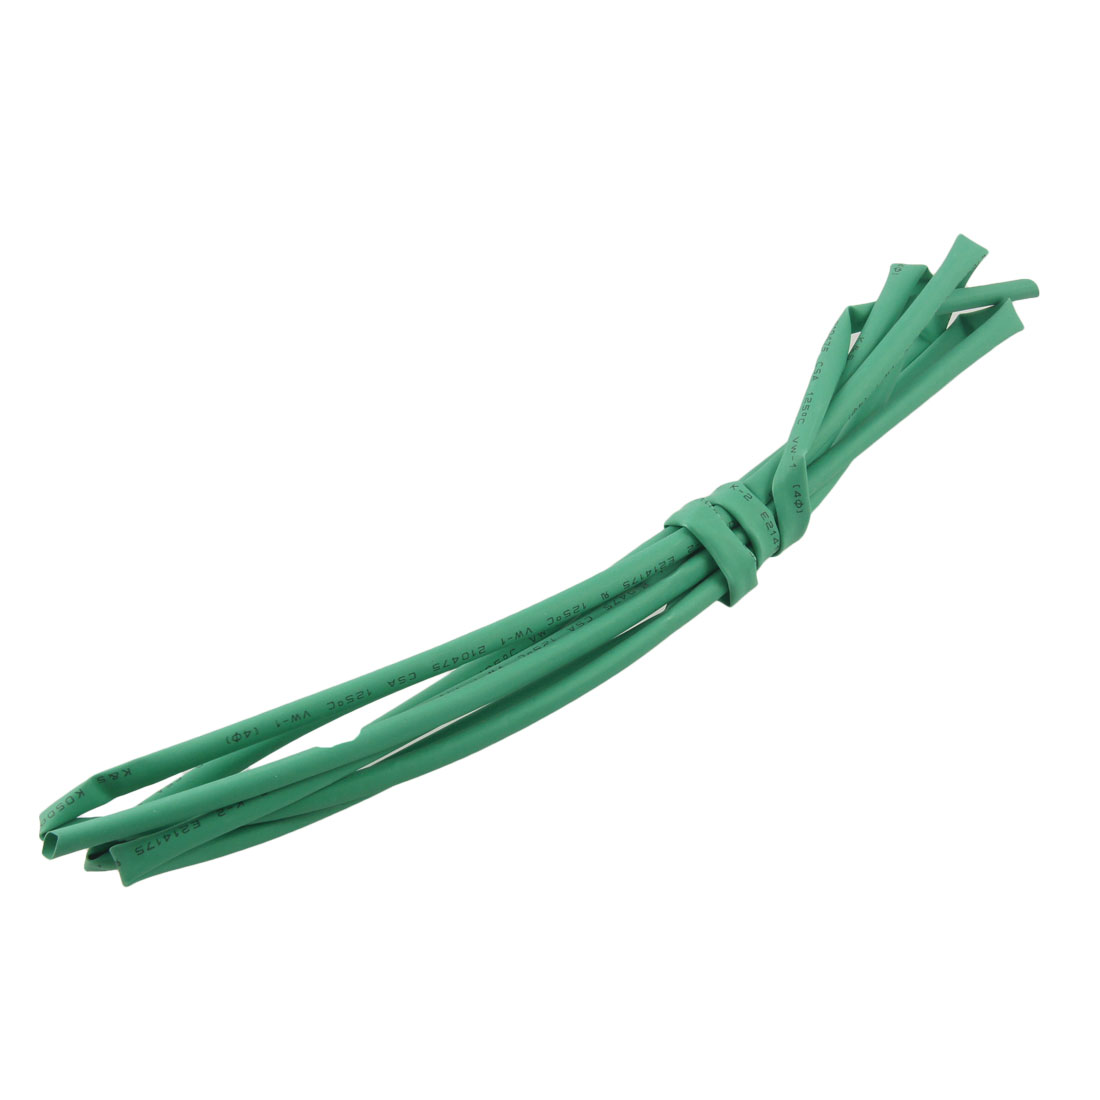 2M Long 4.0mm Dia Ratio 2:1 Heat Shrinking Shrinkable Tube Tubing Green